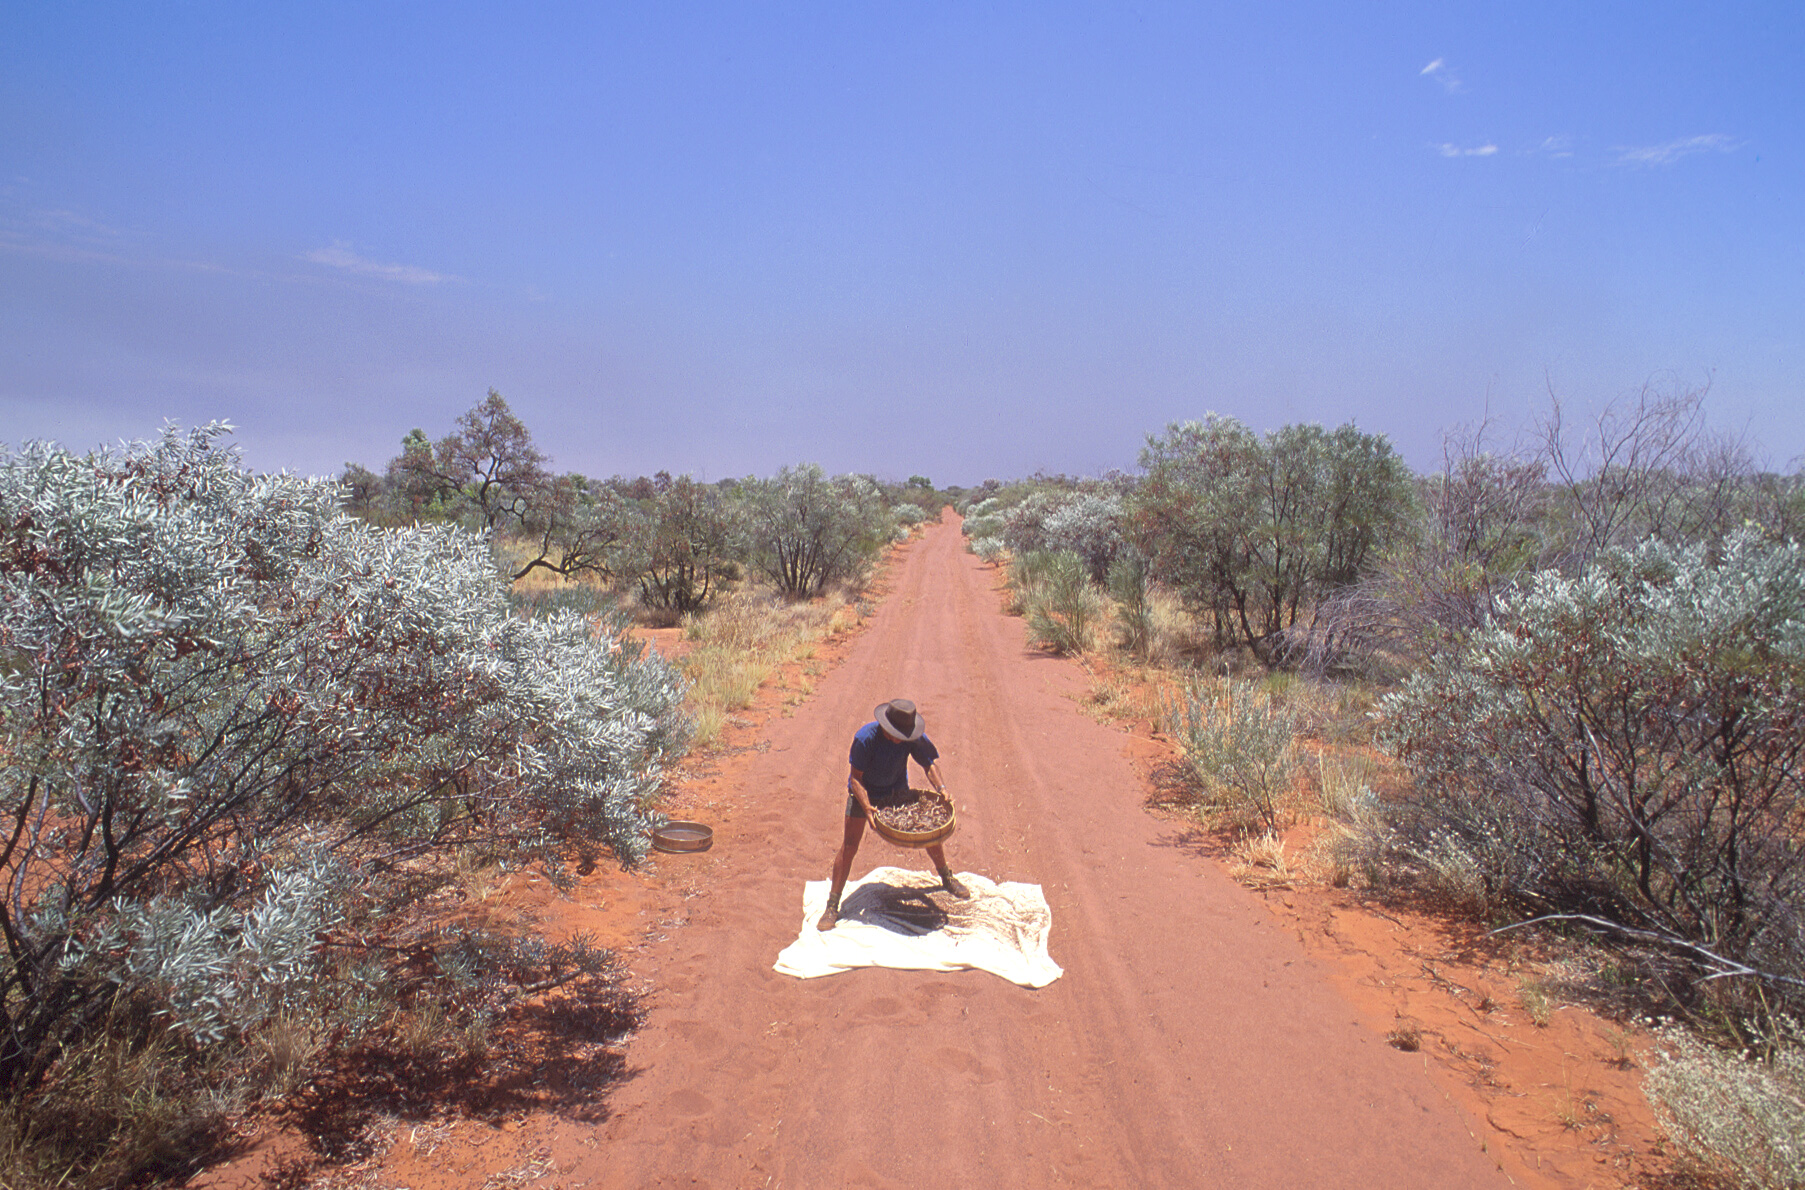 red dirt, tree-lined road runs through the middle of the image away from the viewer. A man with a sieve stands in the middle of the road on a white sheet sorting tree seeds.